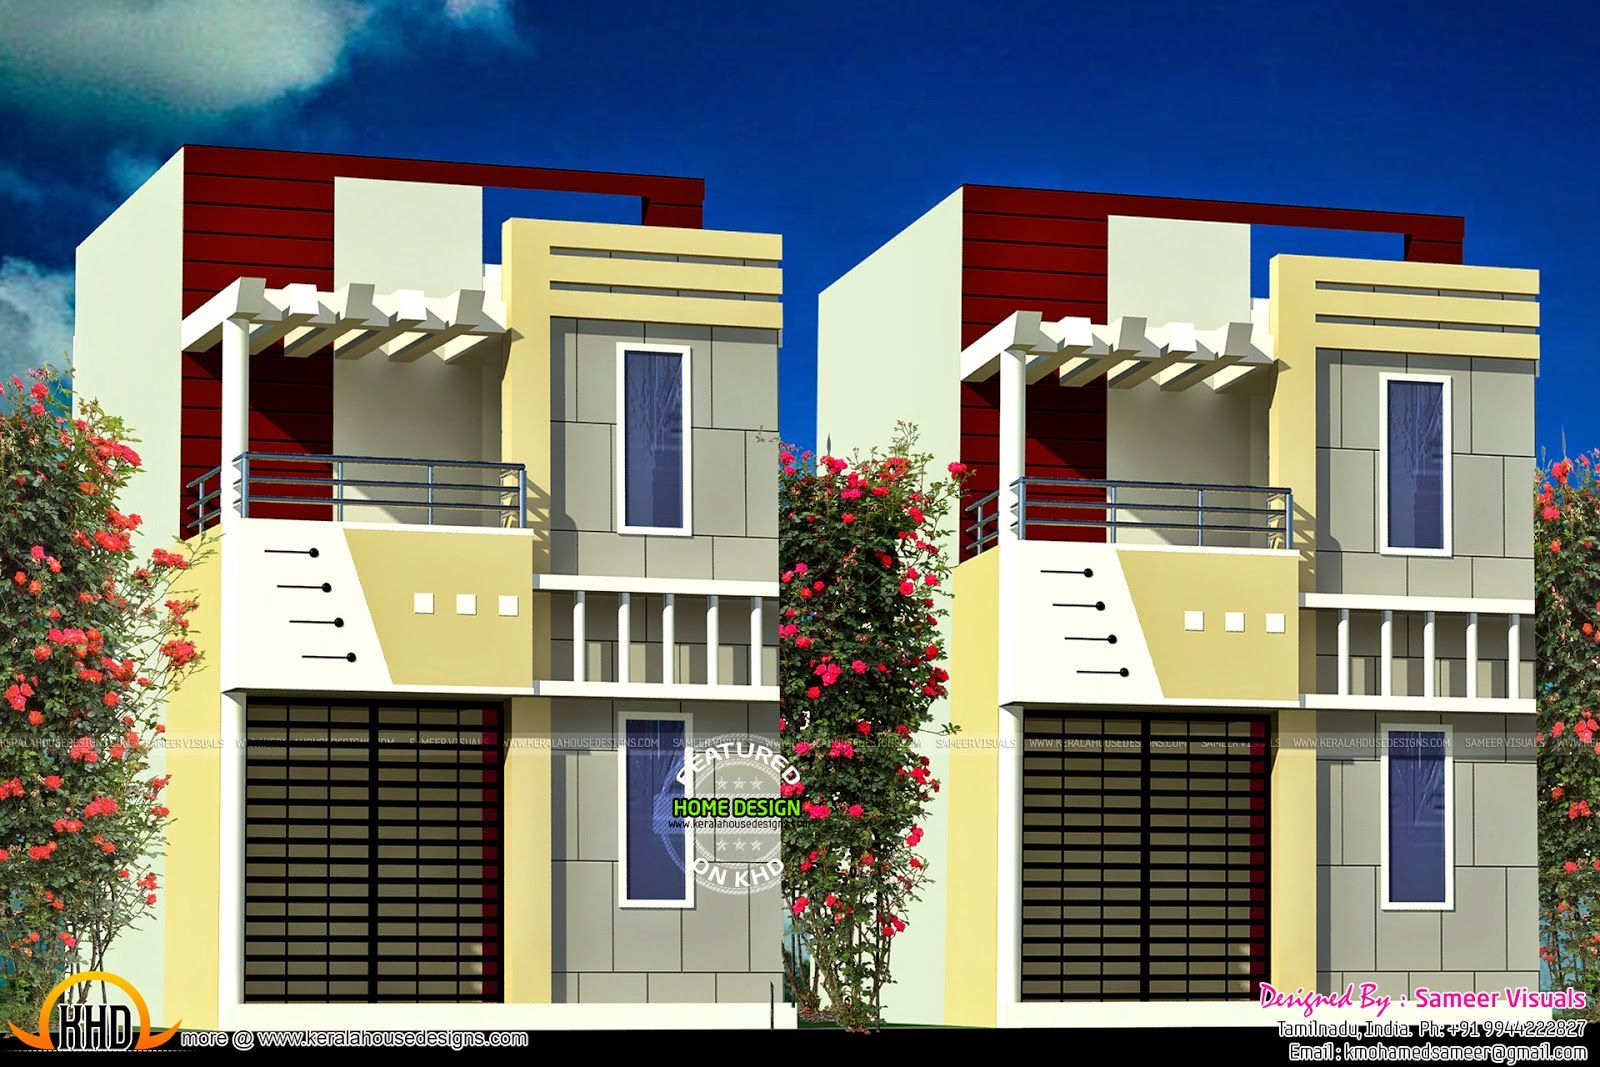 750 Sq Ft House Plans In Indian House Plans: 750 sq ft